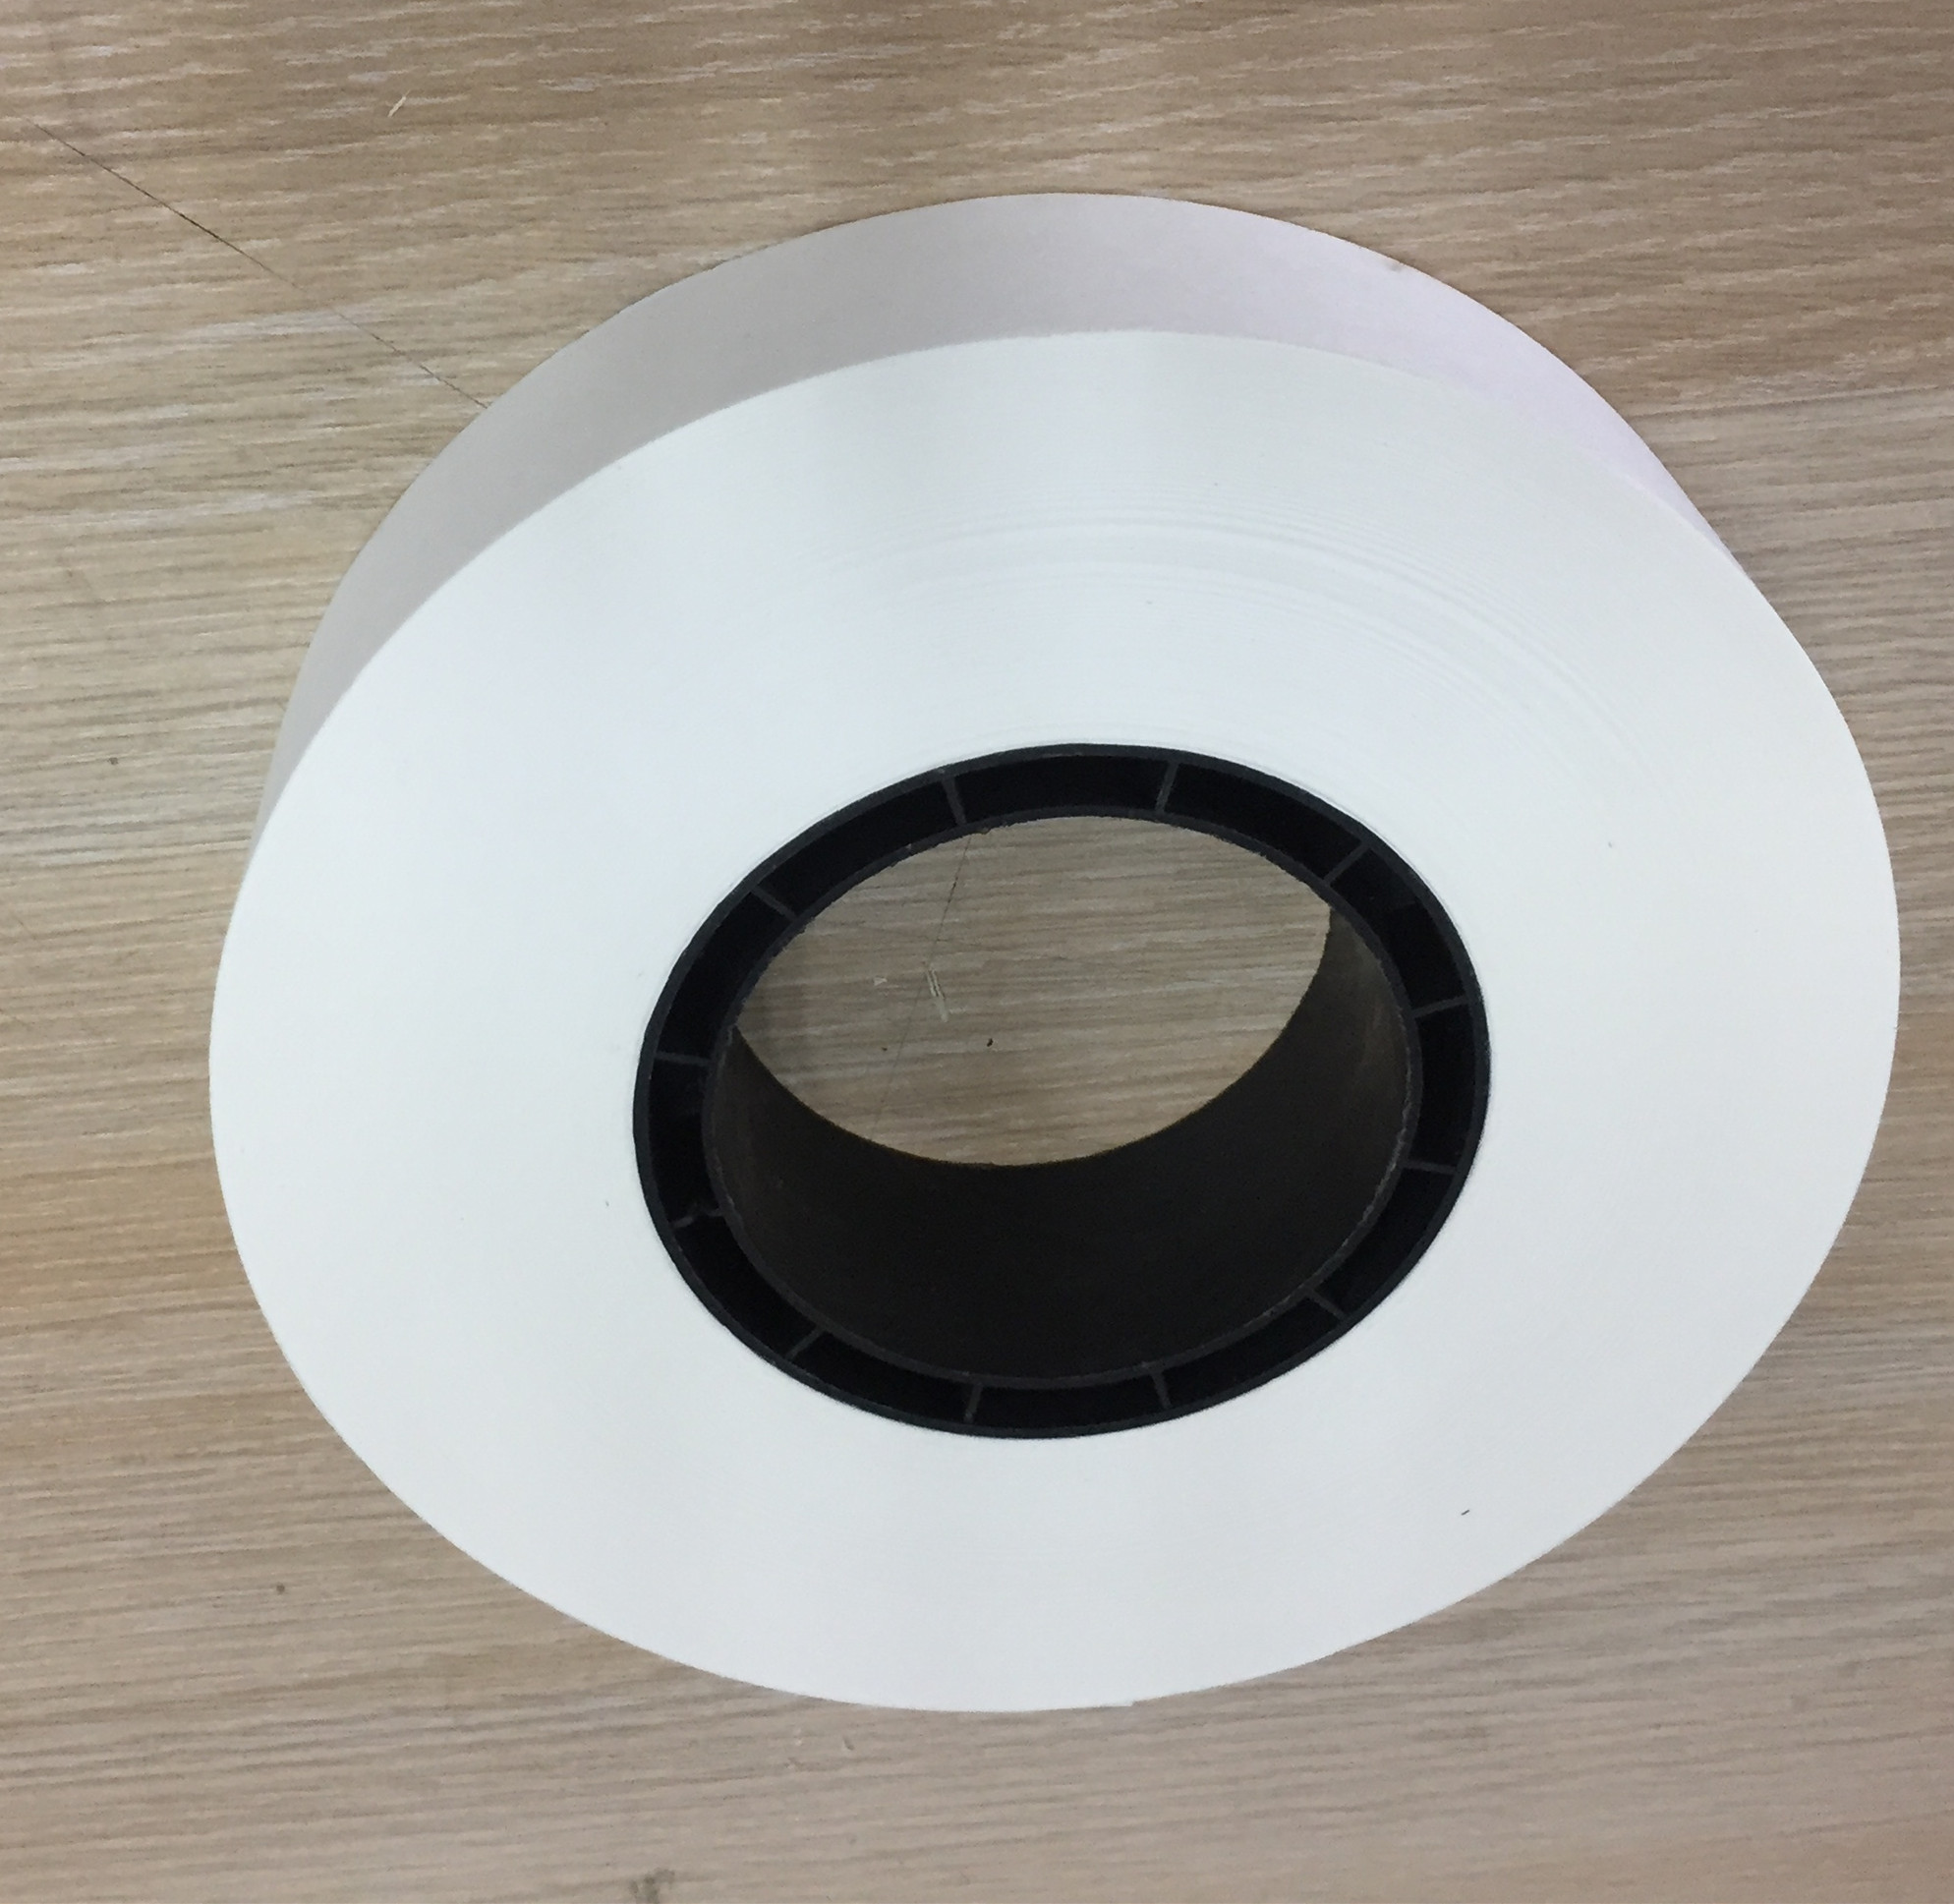 30mm wide 76mm diameter heat applied paper roll for smart currency binder use